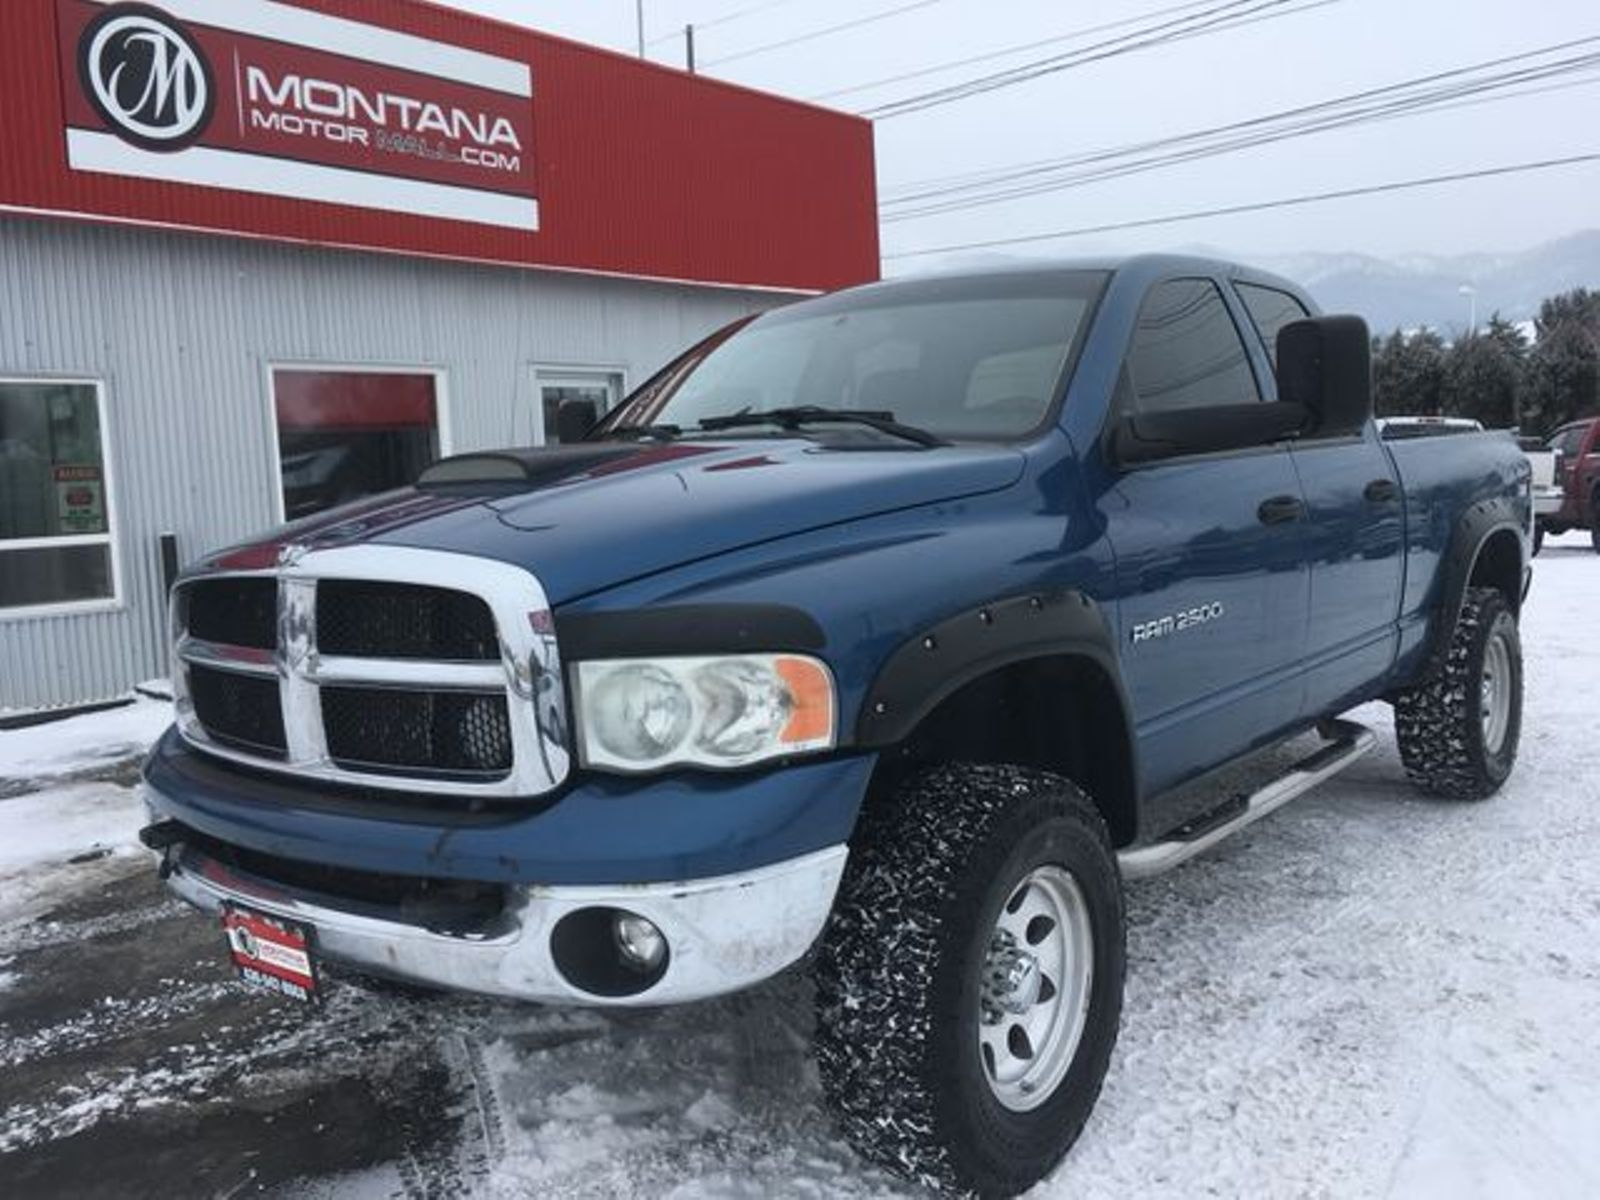 hight resolution of 2003 dodge ram 2500 slt city montana montana motor mall in montana